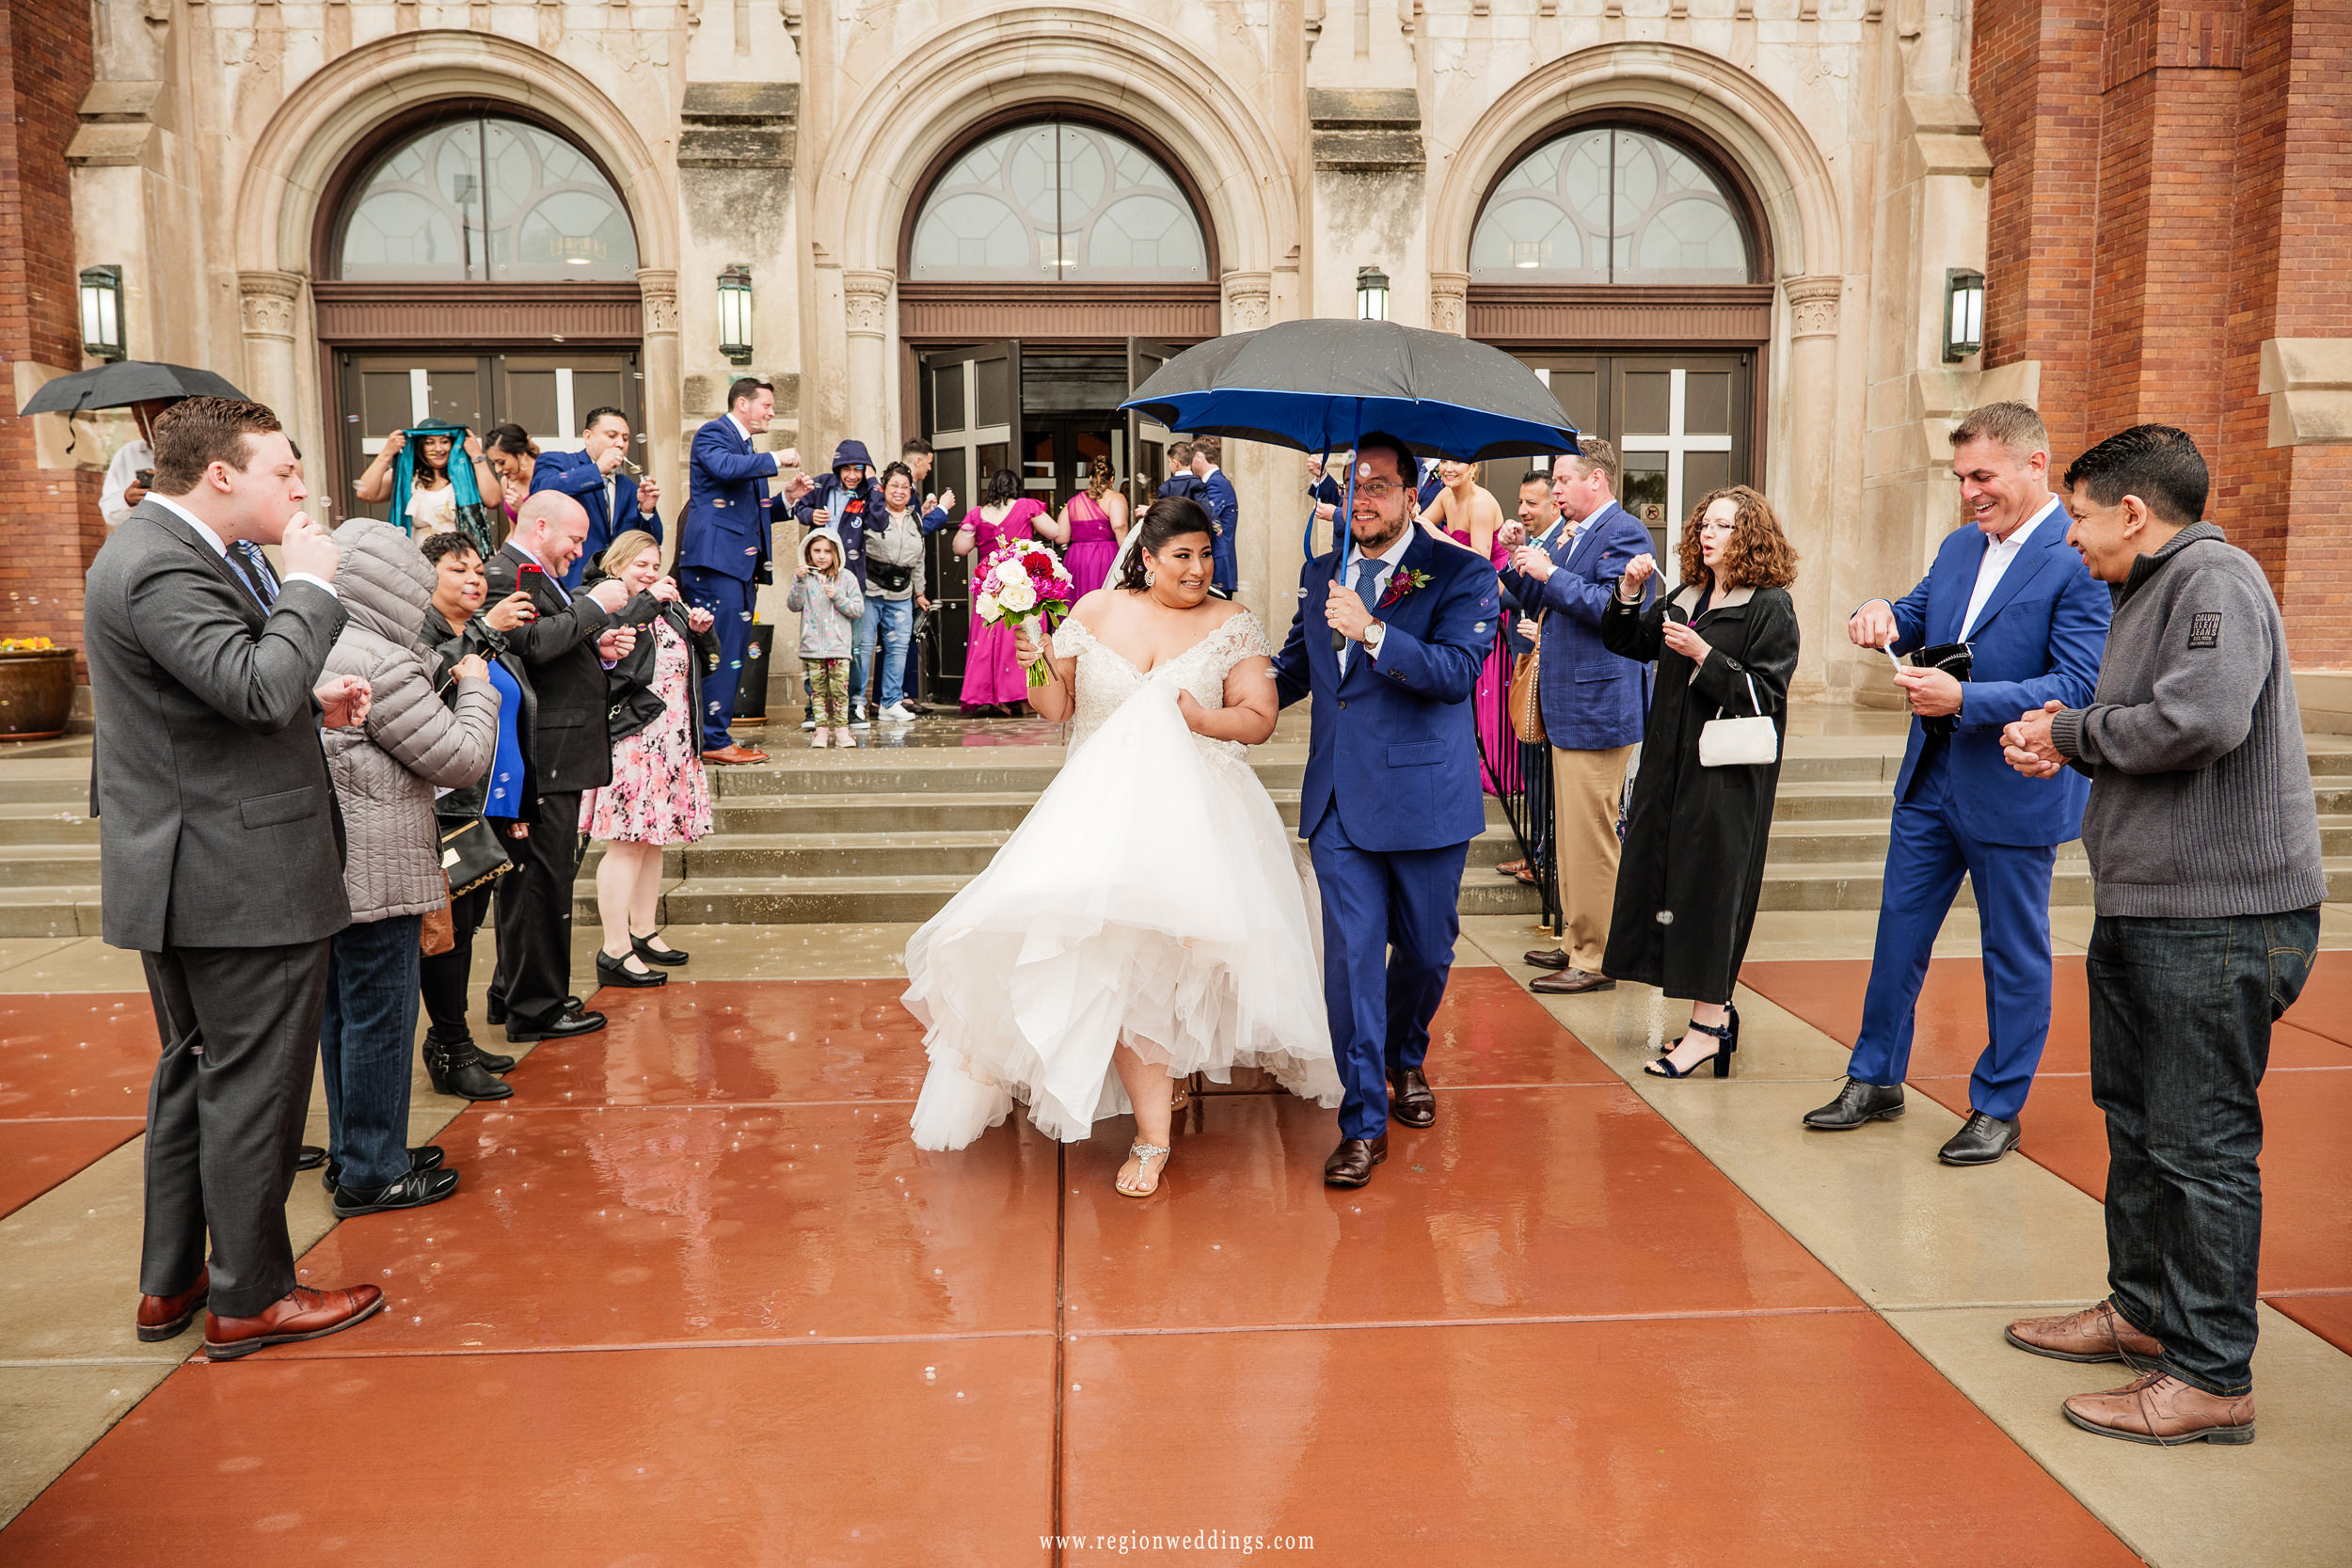 Bubbles and raindrops descend upon the bride and groom during their church wedding exit.